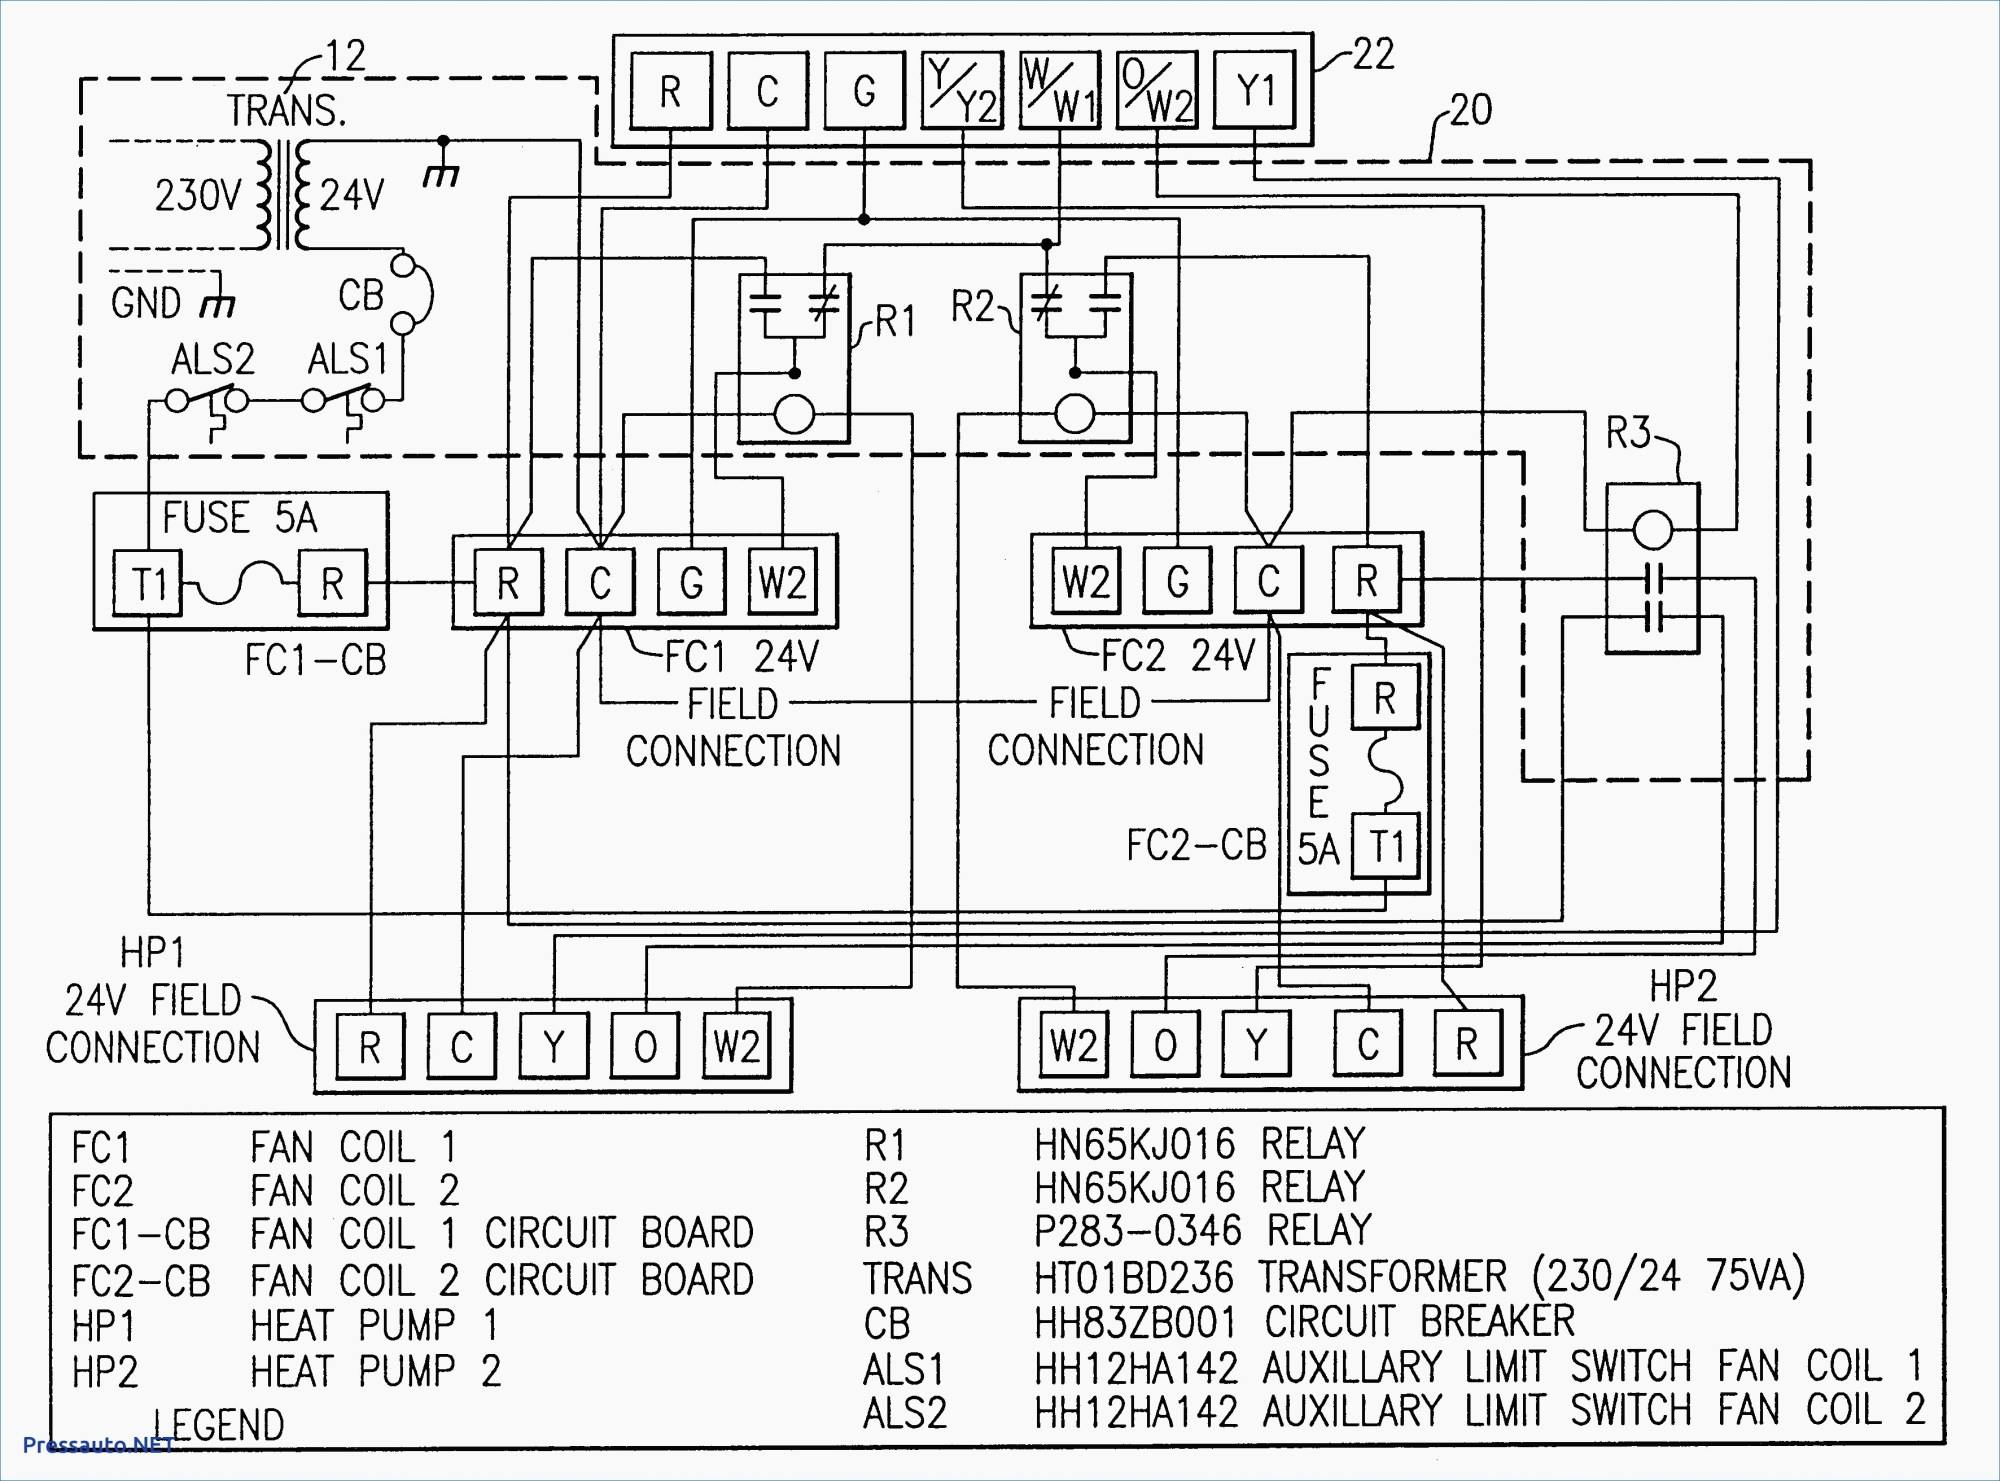 hight resolution of jefferson electric transformer wiring diagram hammond transformer wiring diagram 480v to 120v transformer wiring electric